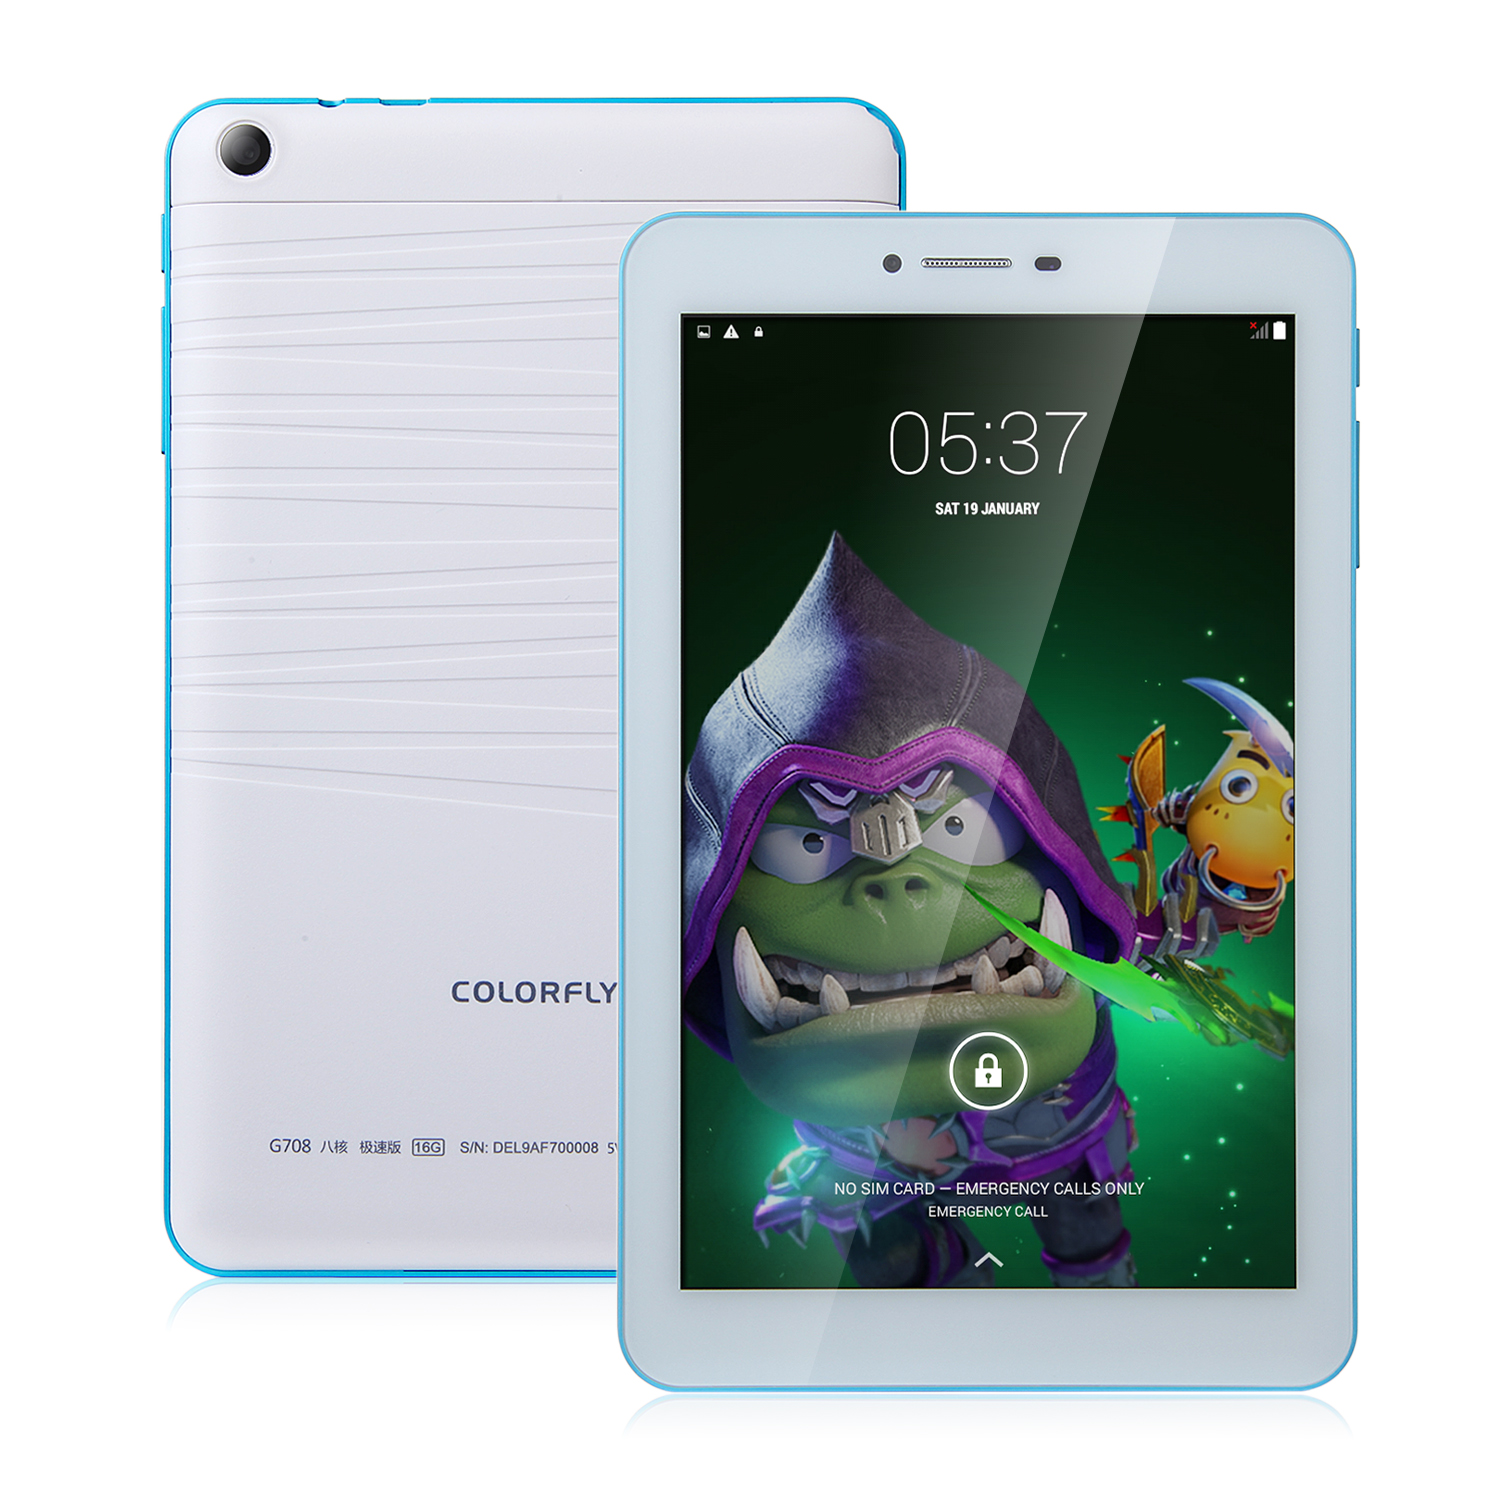 Colorfly G708 3G Tablet PC Octa Core MTK6592 Android 4.4 2GB 16GB IPS 7.0 Inch White